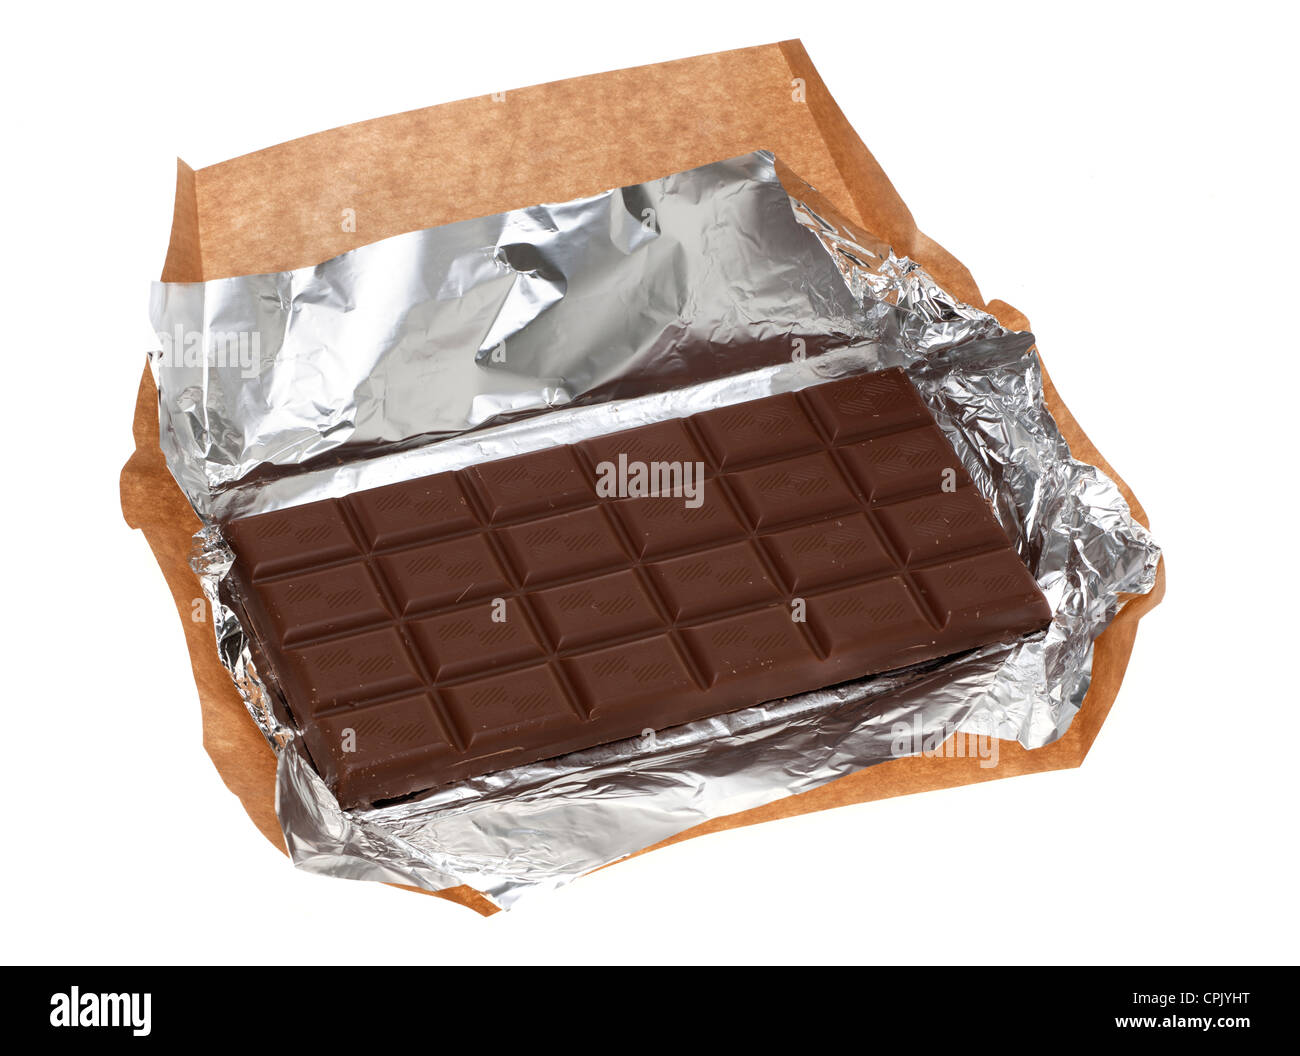 Block of milk chocolate wrapped in brown paper Stock Photo